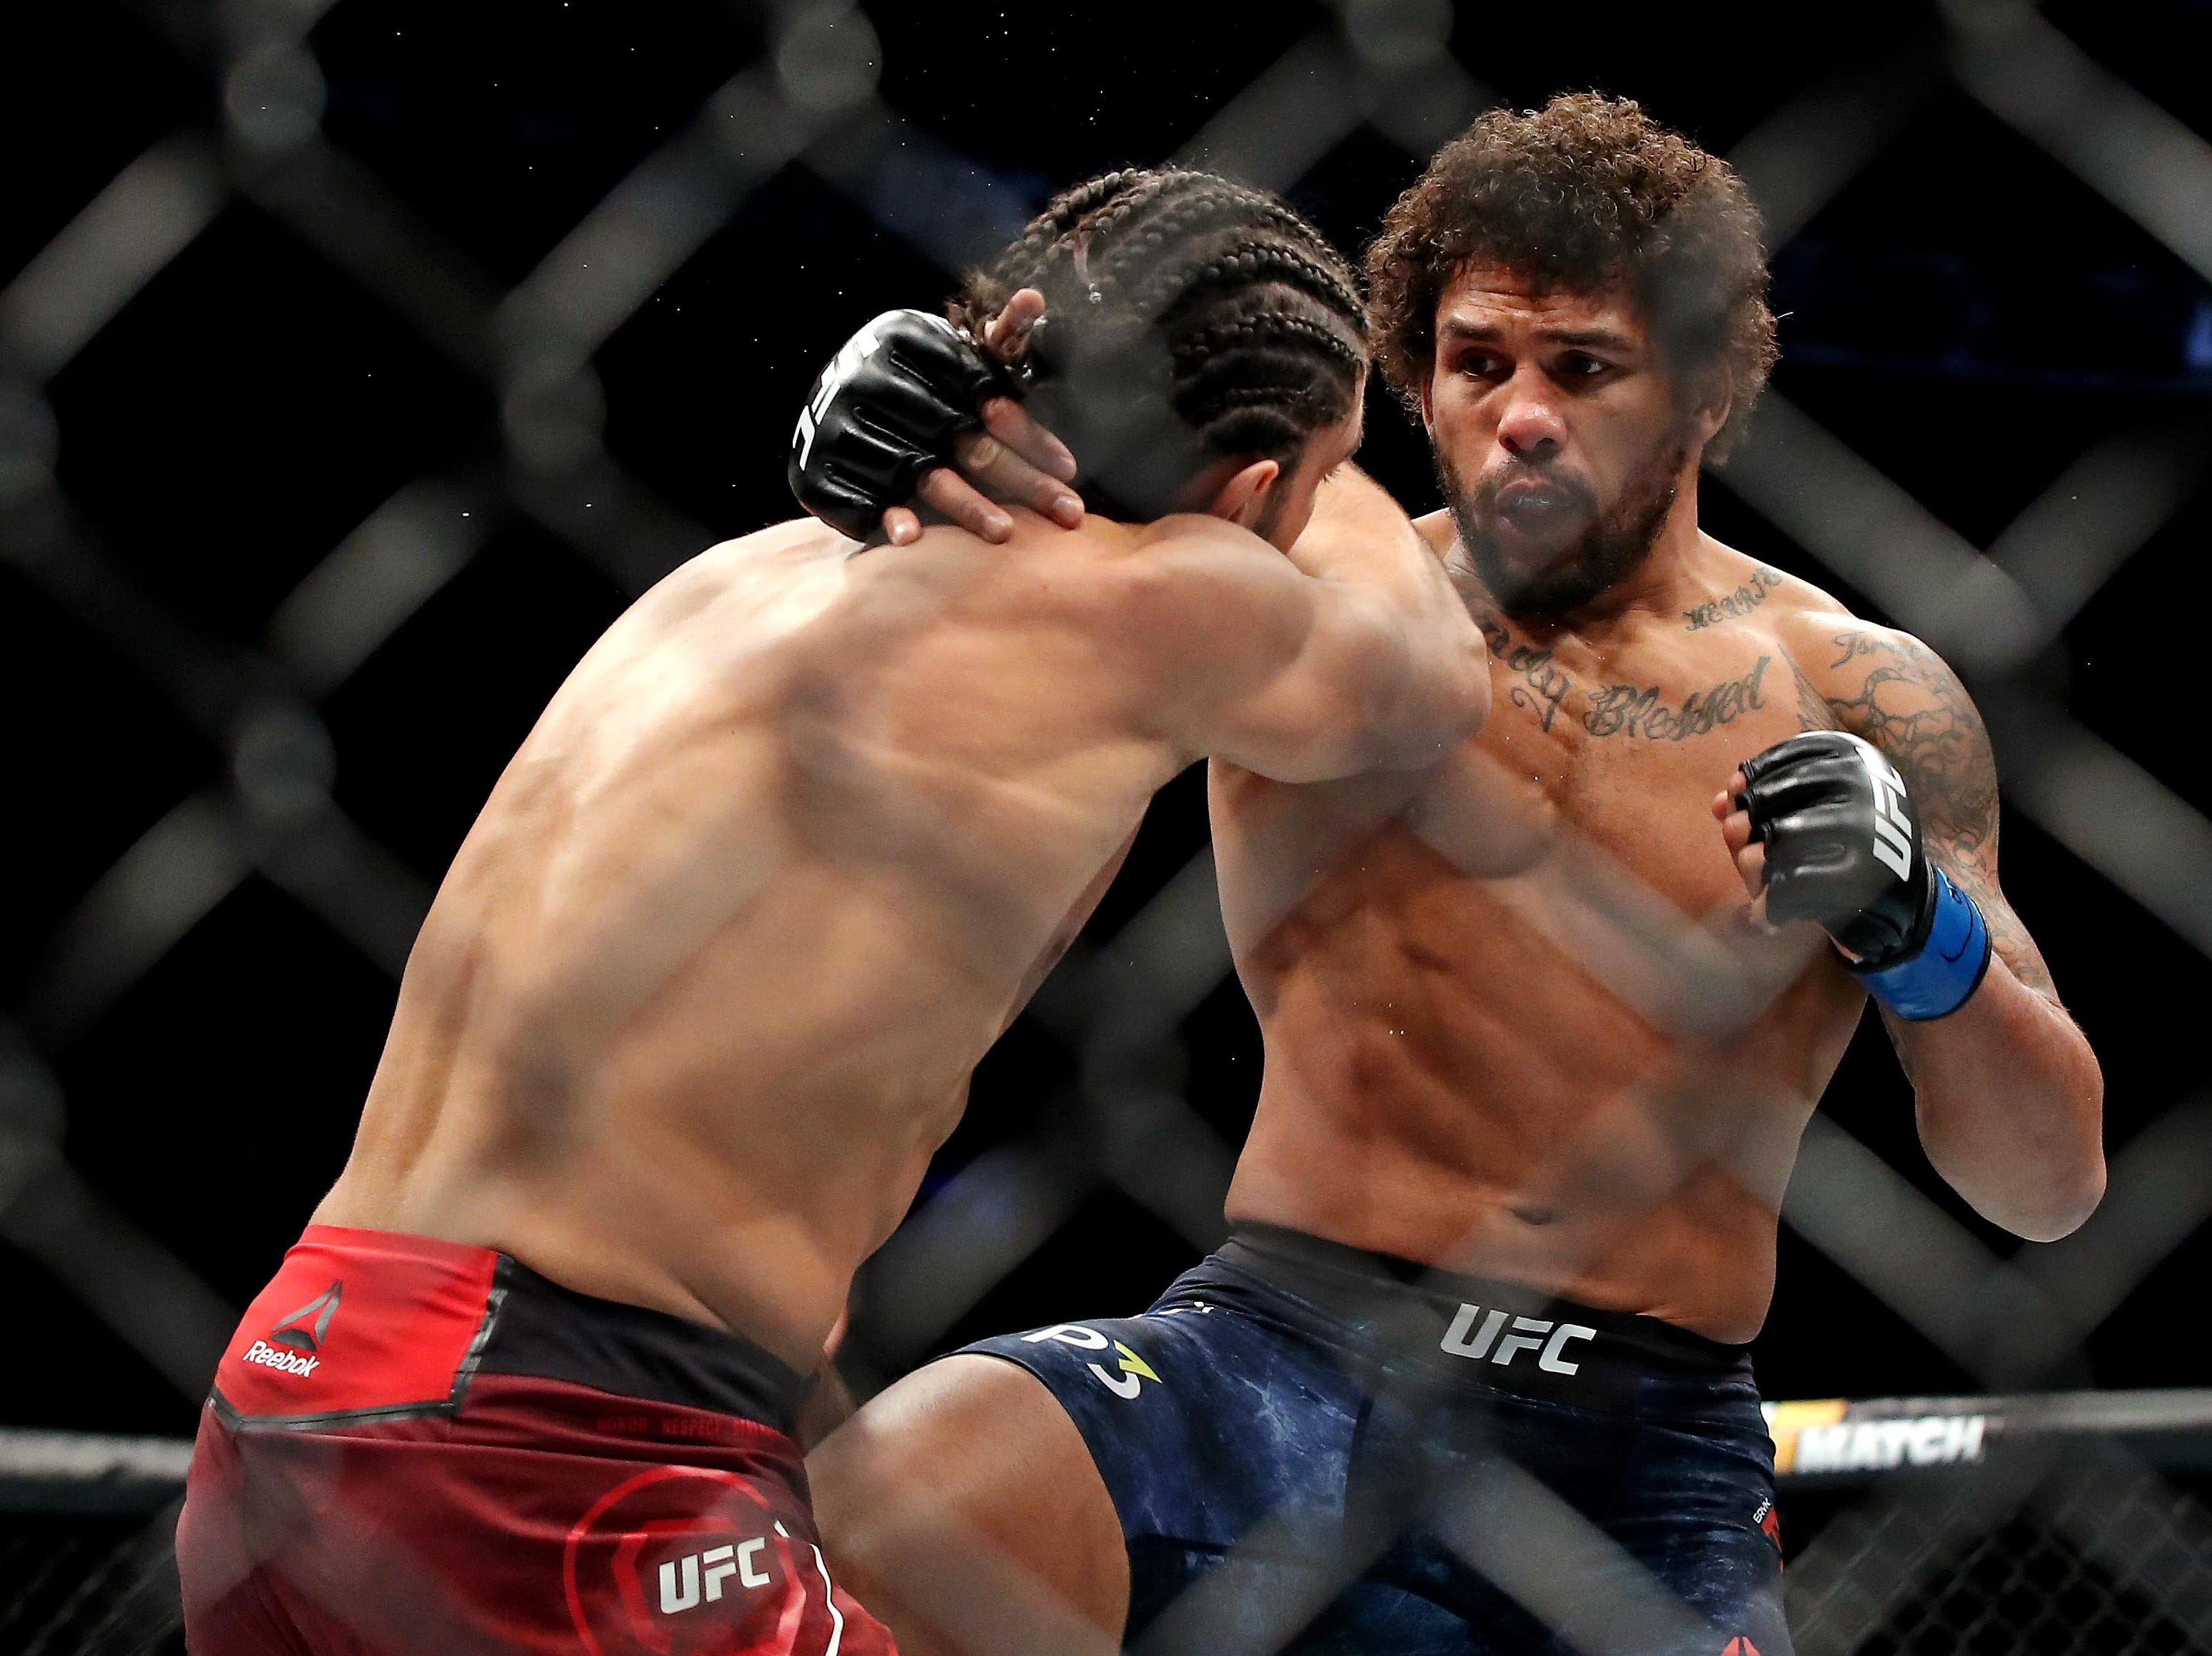 Elias Theodorou (red gloves) fights Eryk Anders (blue gloves) during UFC 231 at Scotiabank Arena.